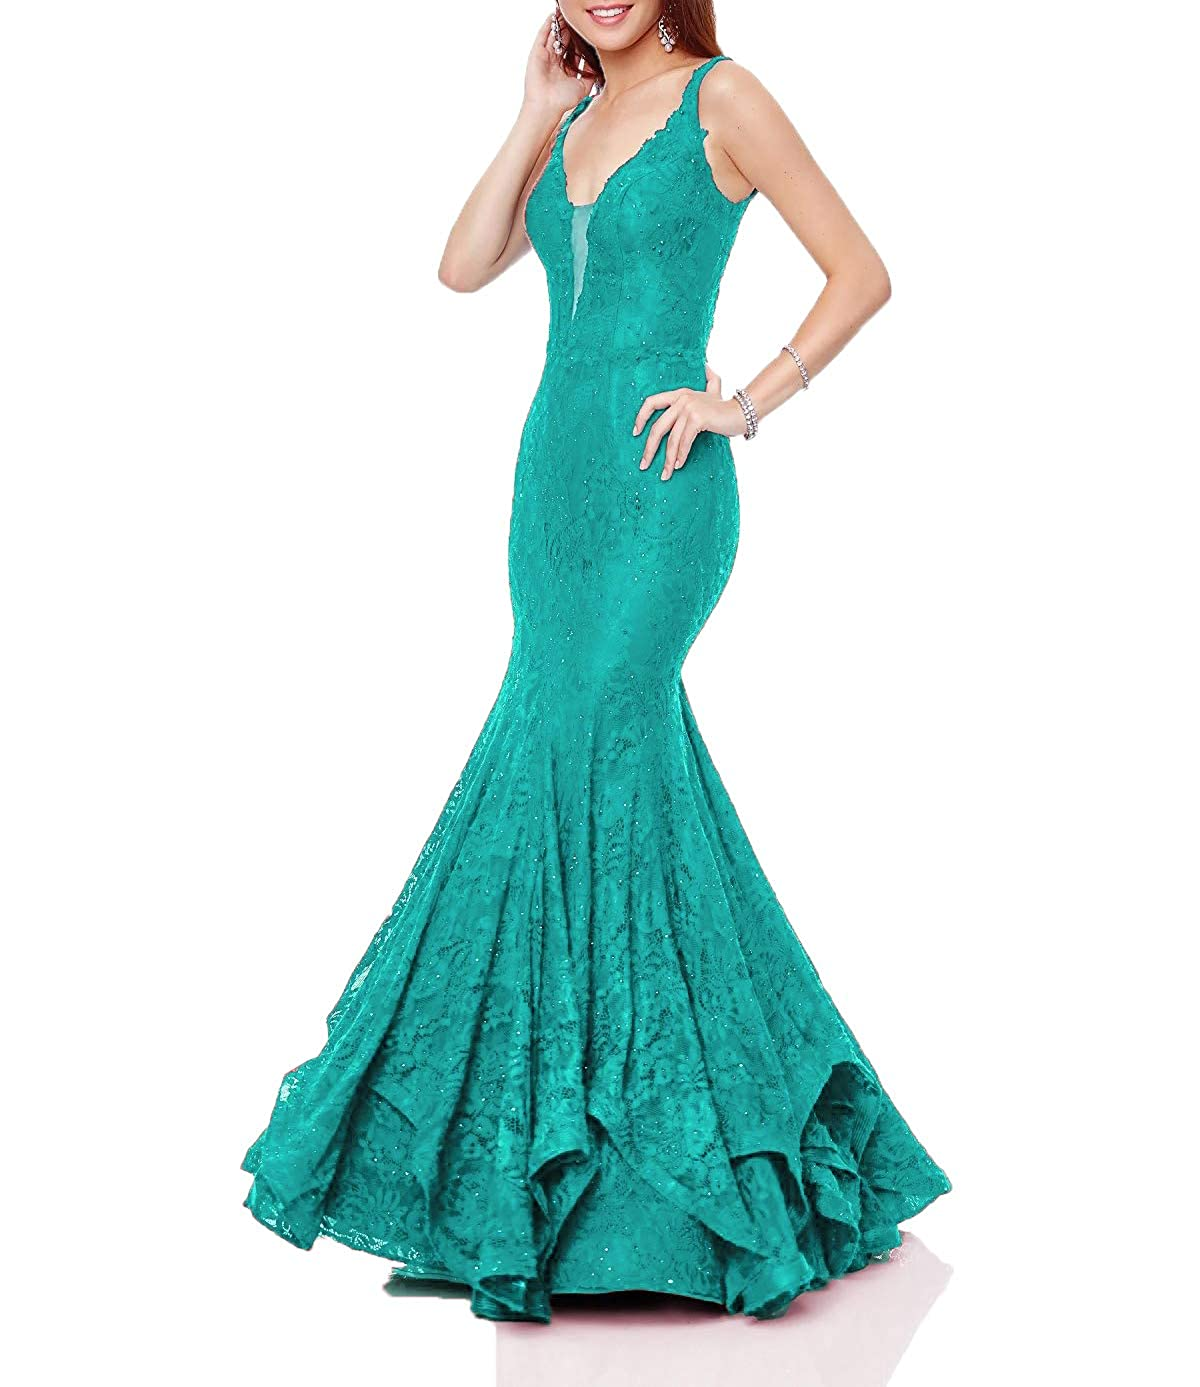 Darkturquoise Wanshaqin Women's Mermaid Prom Formal Dresses Lace Trumpet Evening Cocktail Dresses Bridesmaid Gowns